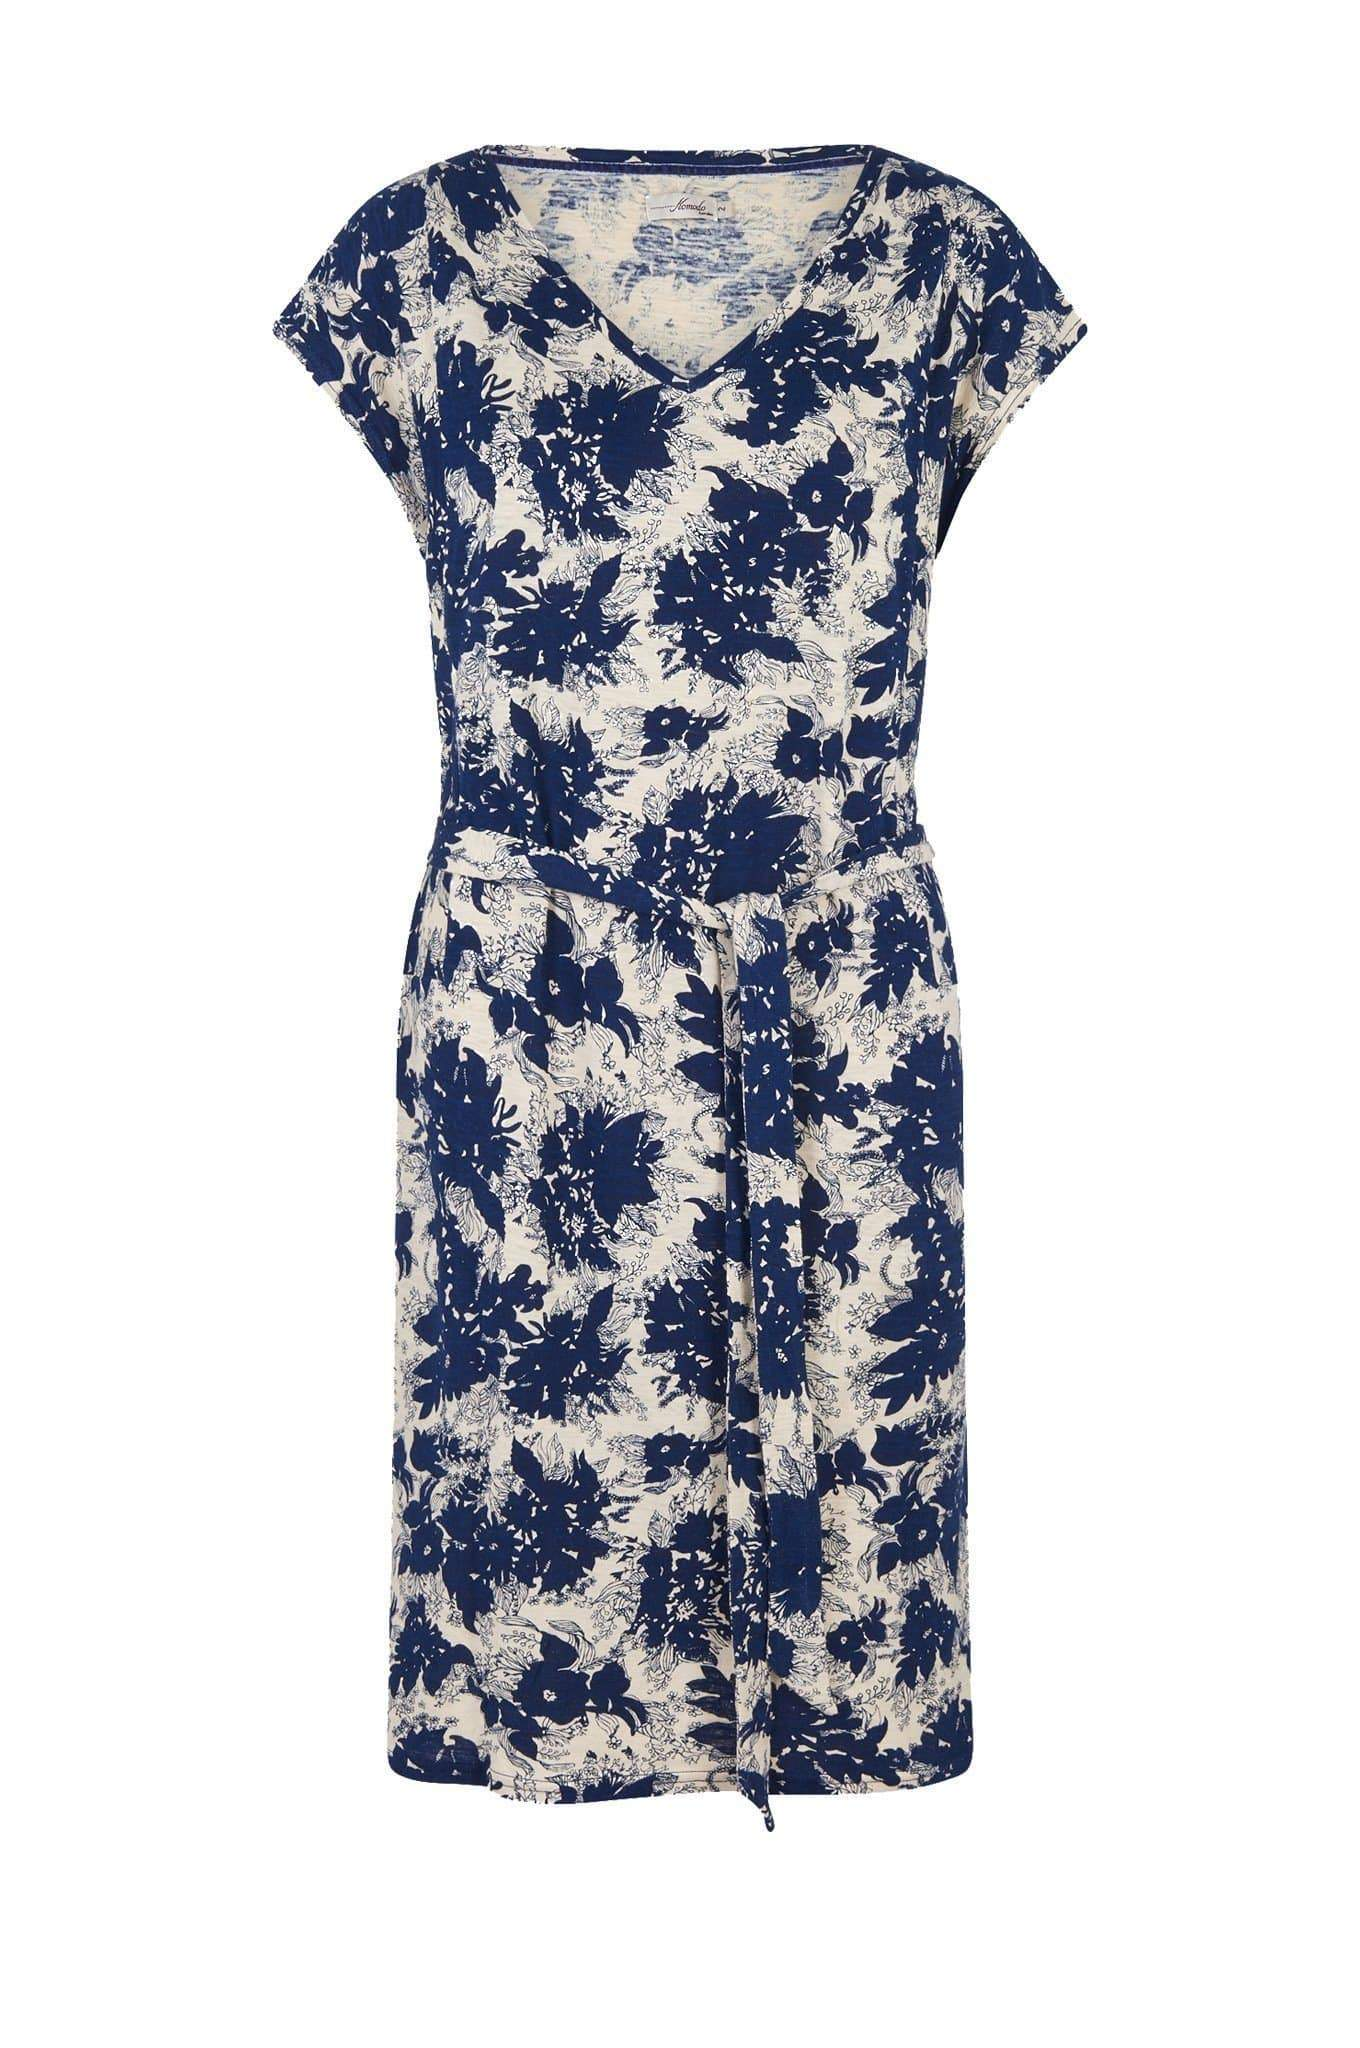 KOMODO Dress ALIE Dress Flower sustainable fashion ethical fashion